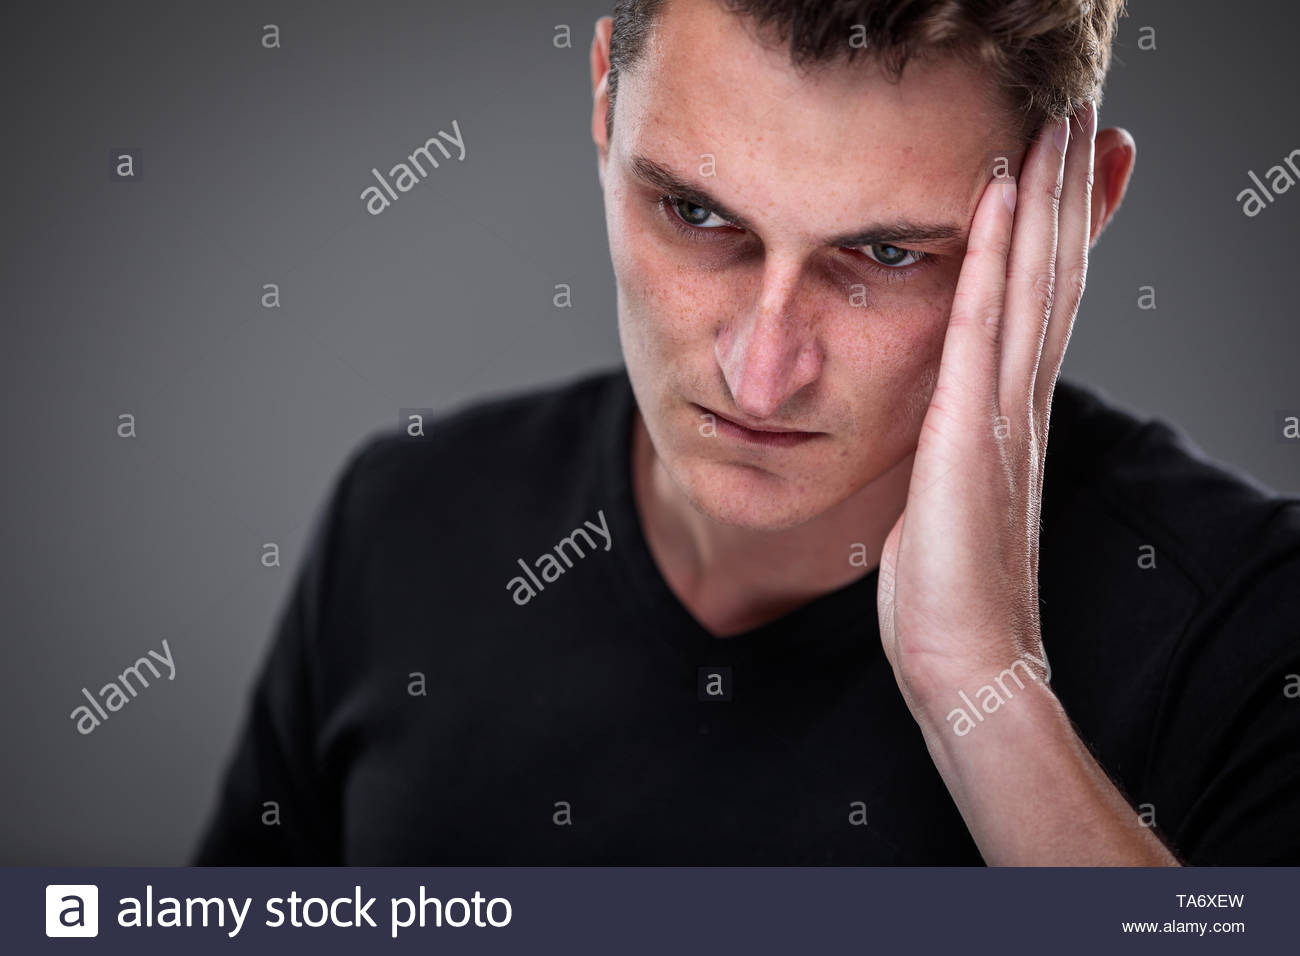 Fear/anxiety/regret/uncertainty in a young man - effects of a difficult life situation - vivid emotions concept - Stock Image